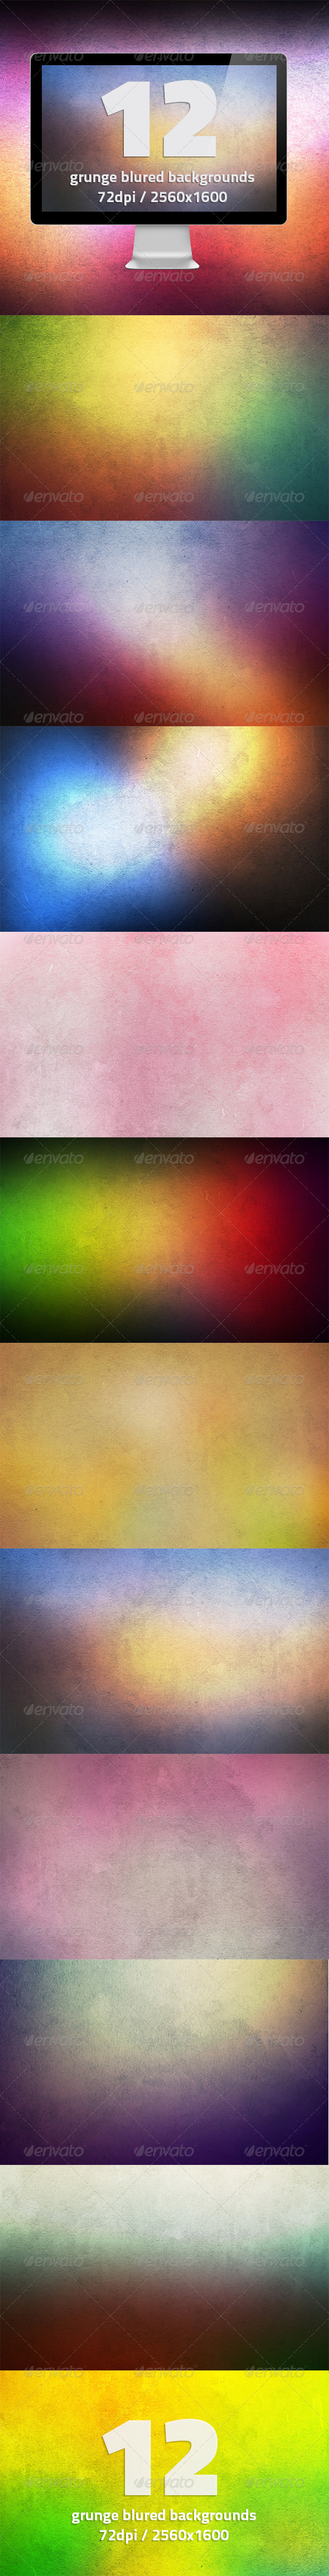 12 HQ Grunge Blurred Backgrounds Vol.2